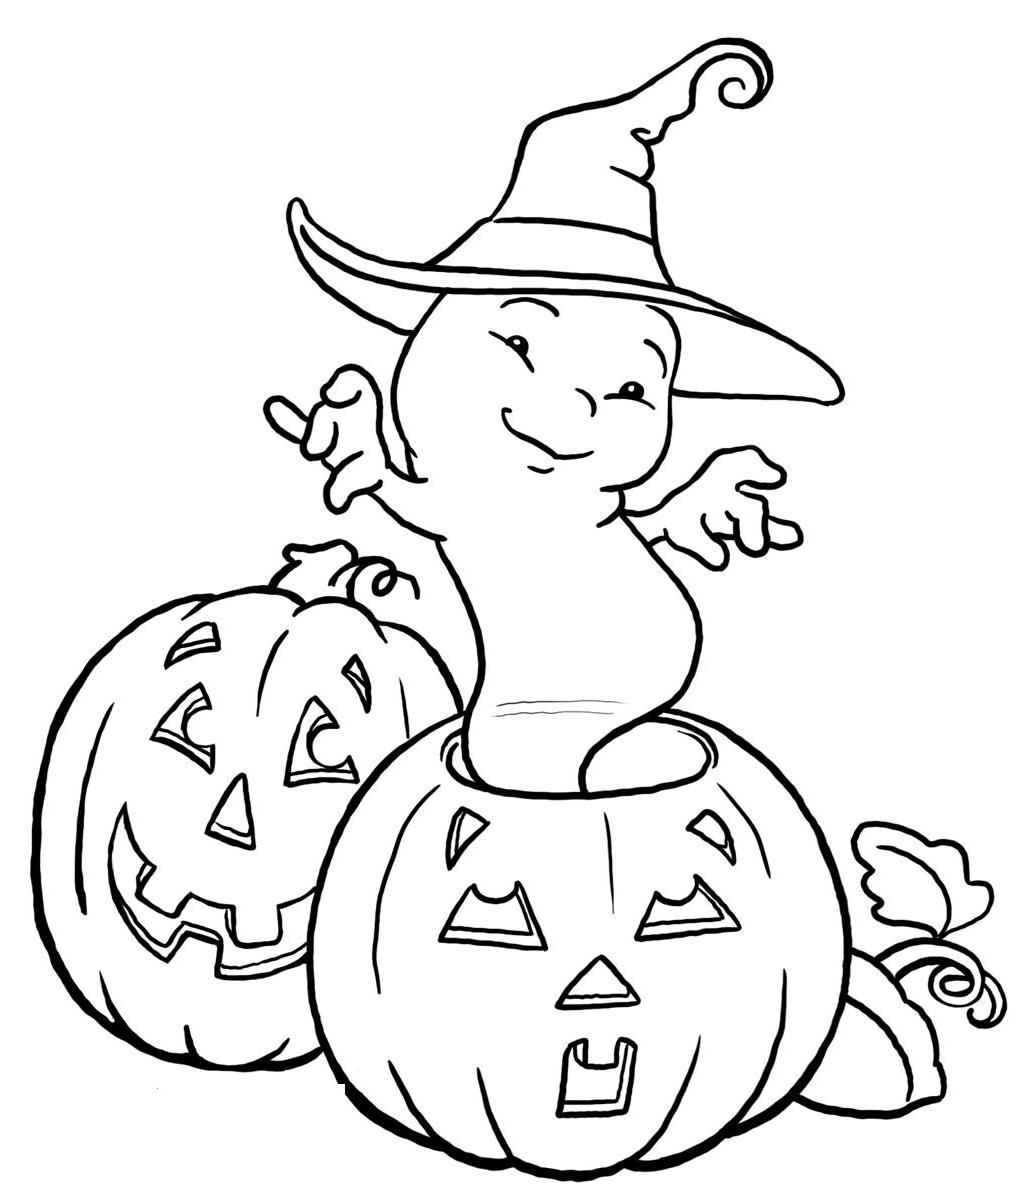 halloween ghost coloring pages big ghost coloring page coloring book coloring ghost halloween pages